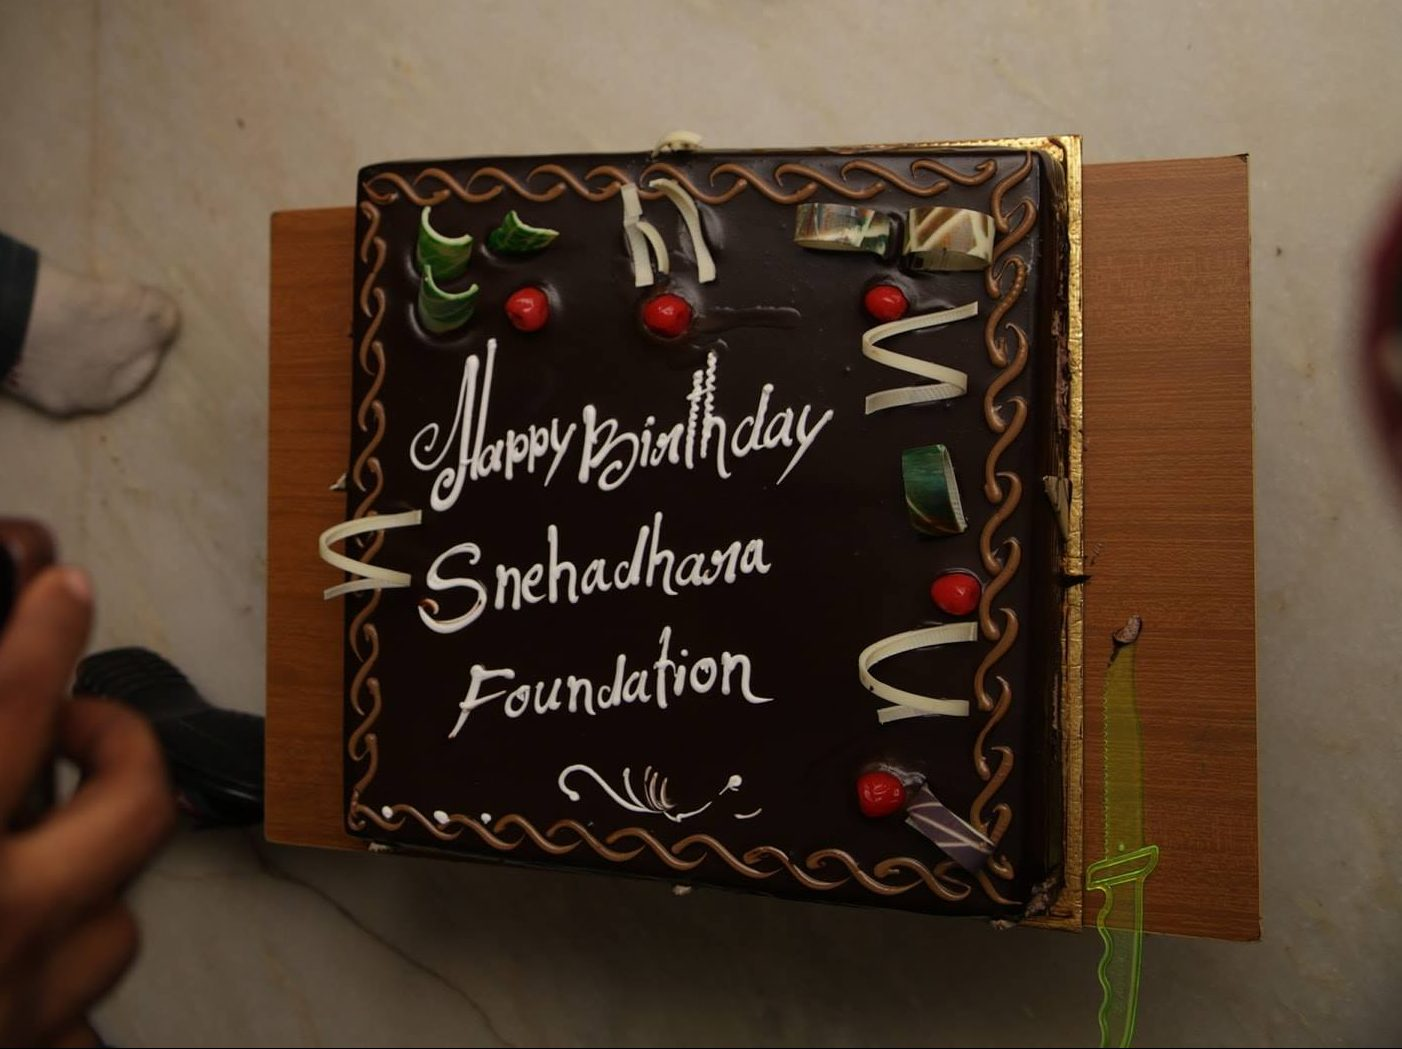 Snehadhara's Sixth Birthday – A Celebration of Expression